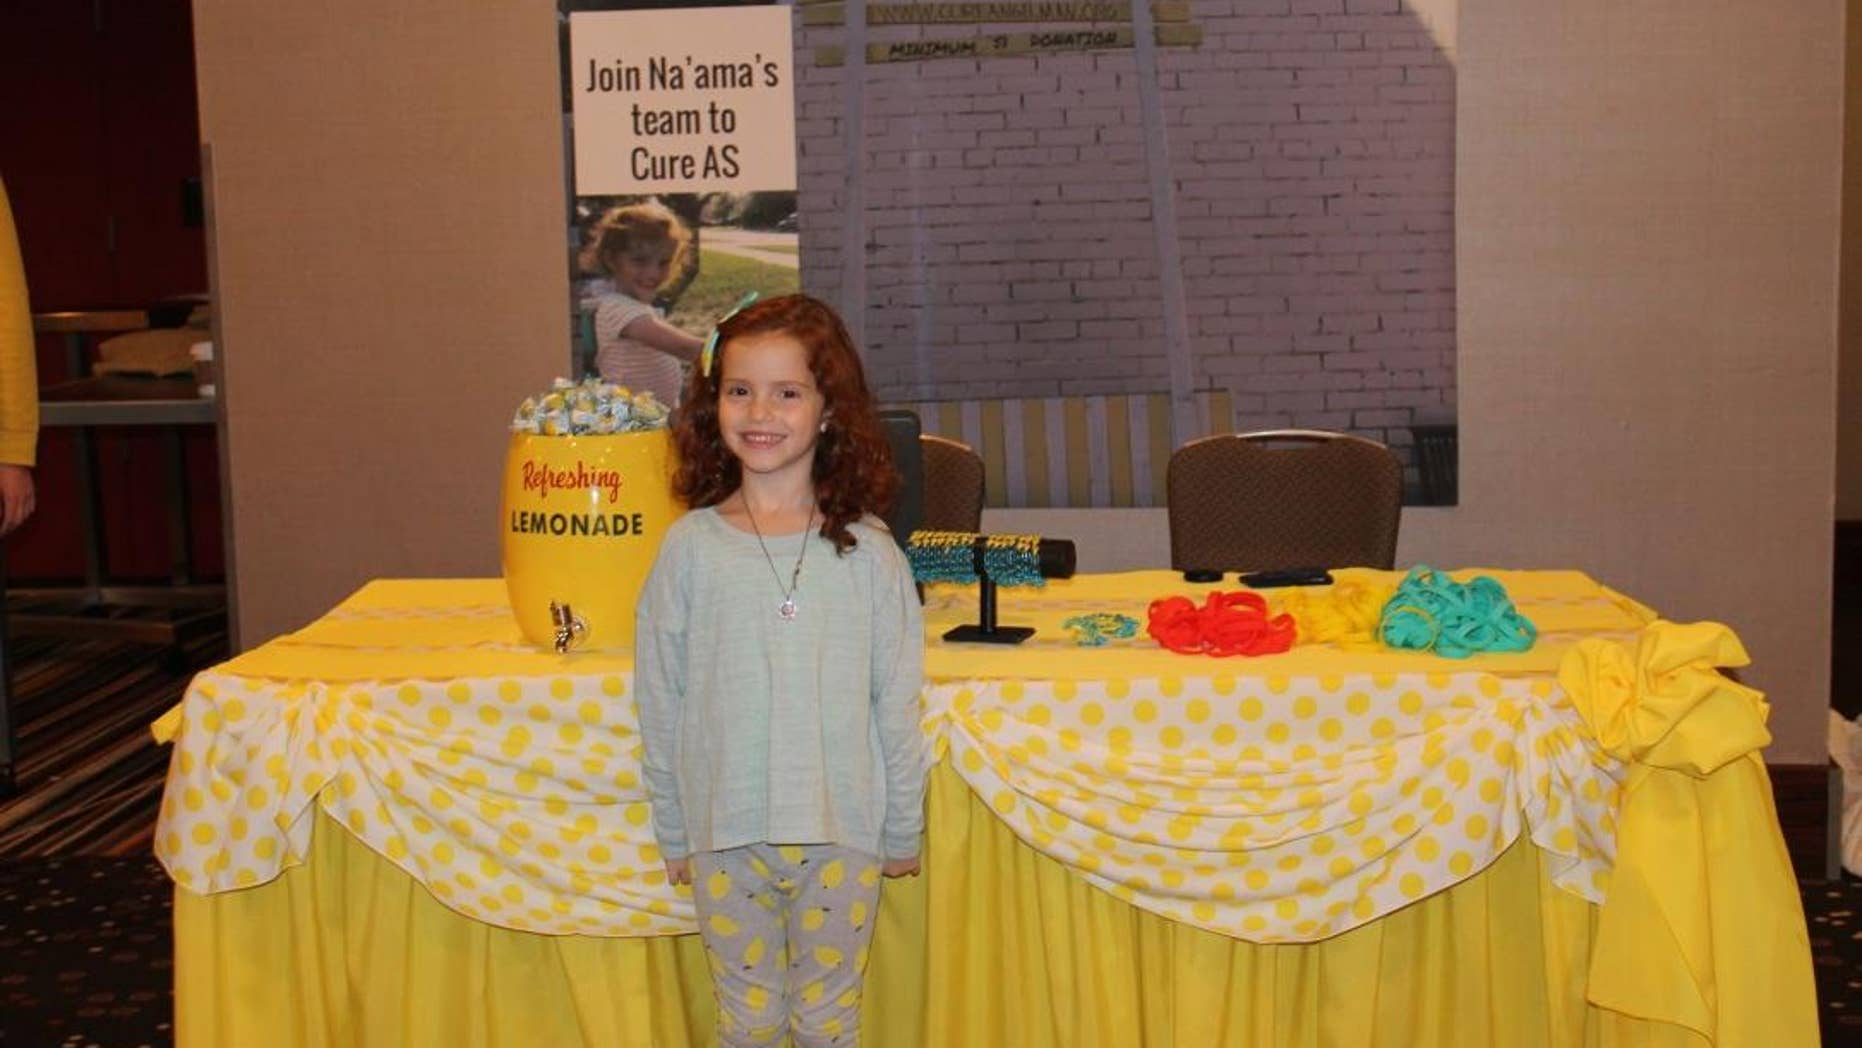 Na'ama Uzan, 6, started a lemonade stand outside her family's home in 2014 to raise funds to help research Angelman syndrome, which her brother suffers from.